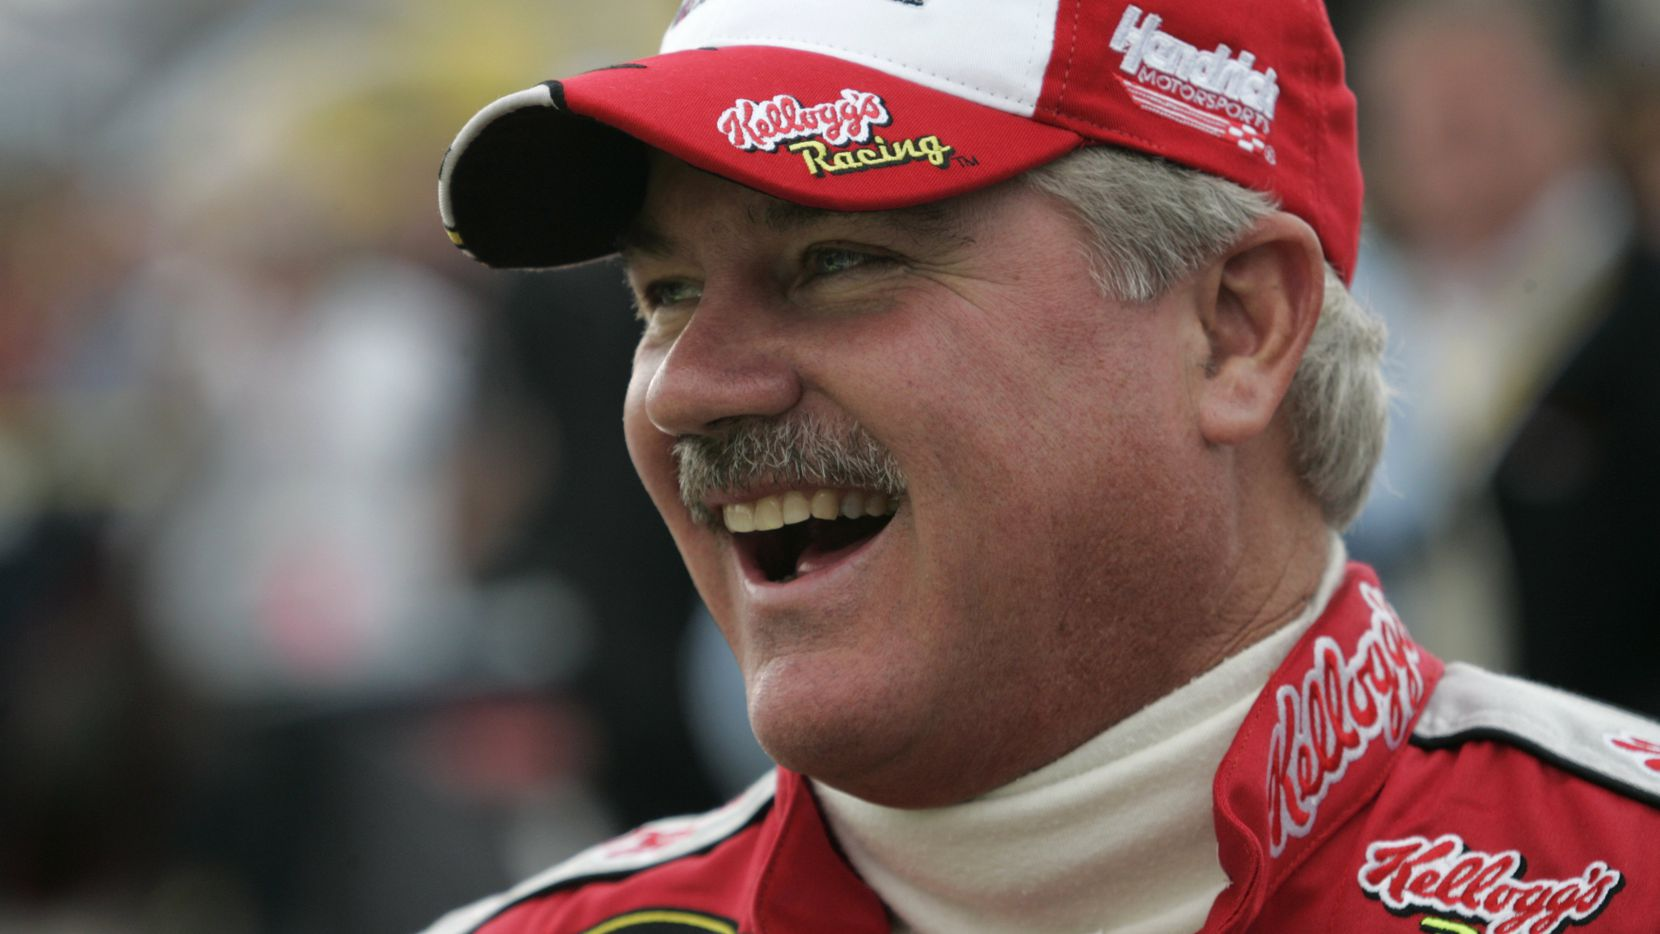 Terry Labonte laughs before the start of the Dickies 500 NASCAR Nextel Cup Series race at Texas Motor Speedway in Fort Worth, Texas on Sunday, November 5, 2006.